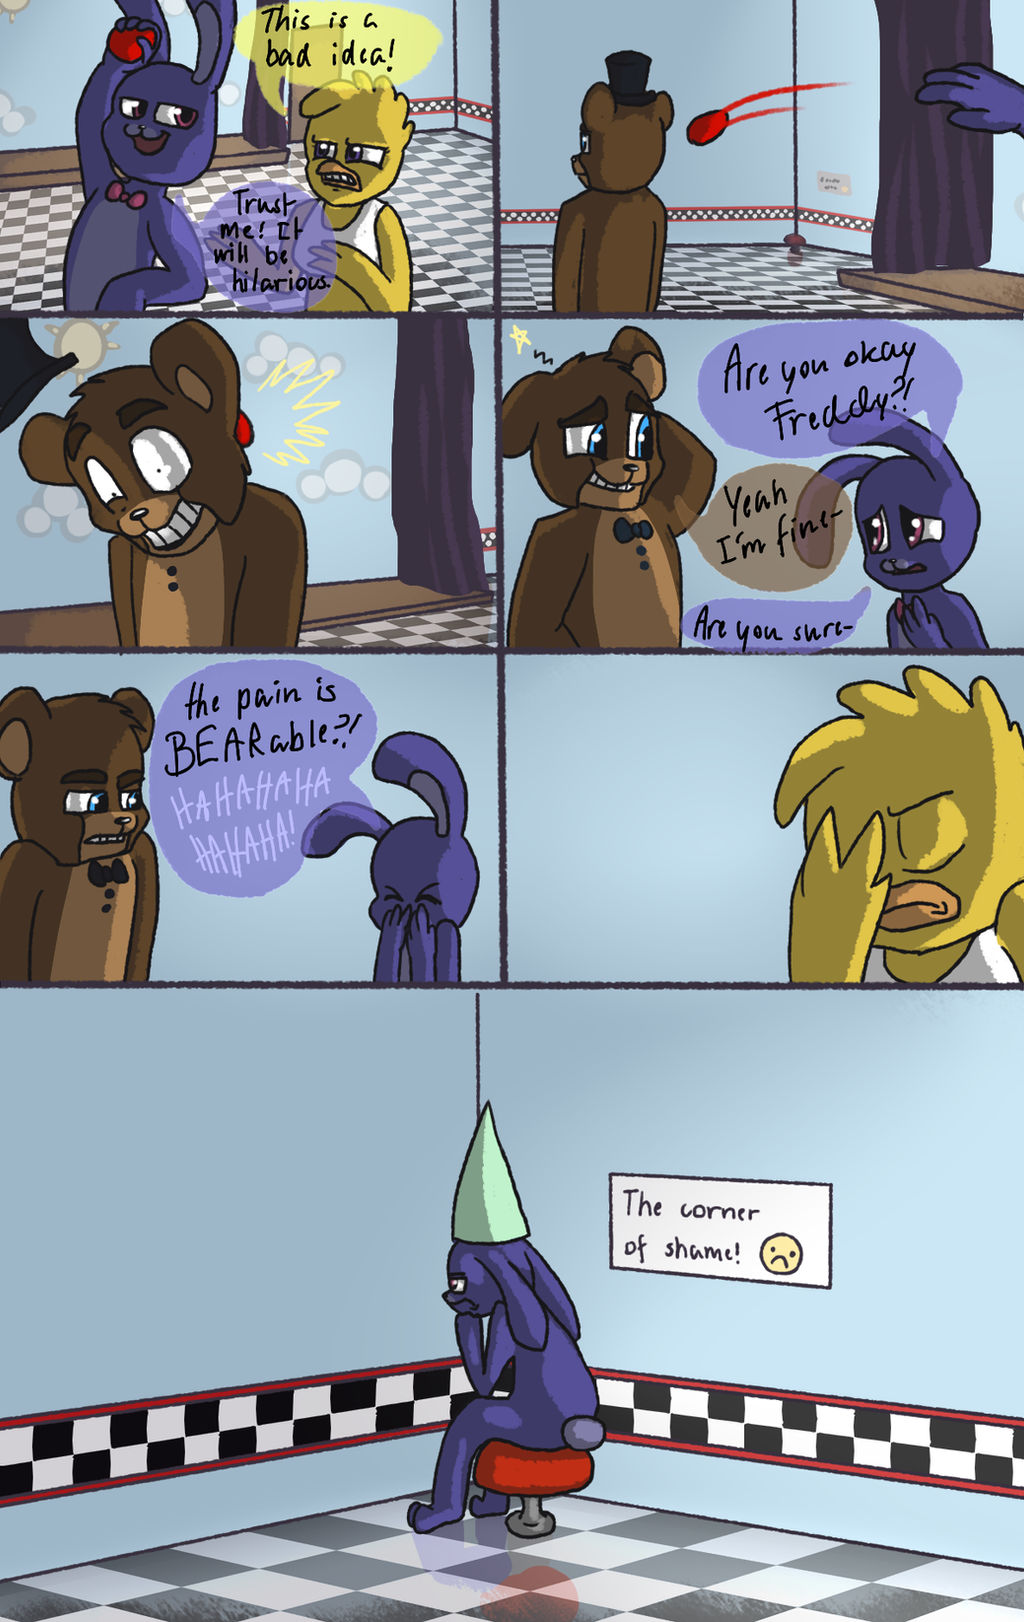 Fnaf Comics En Español short comics on fnaf-comic-zone - deviantart